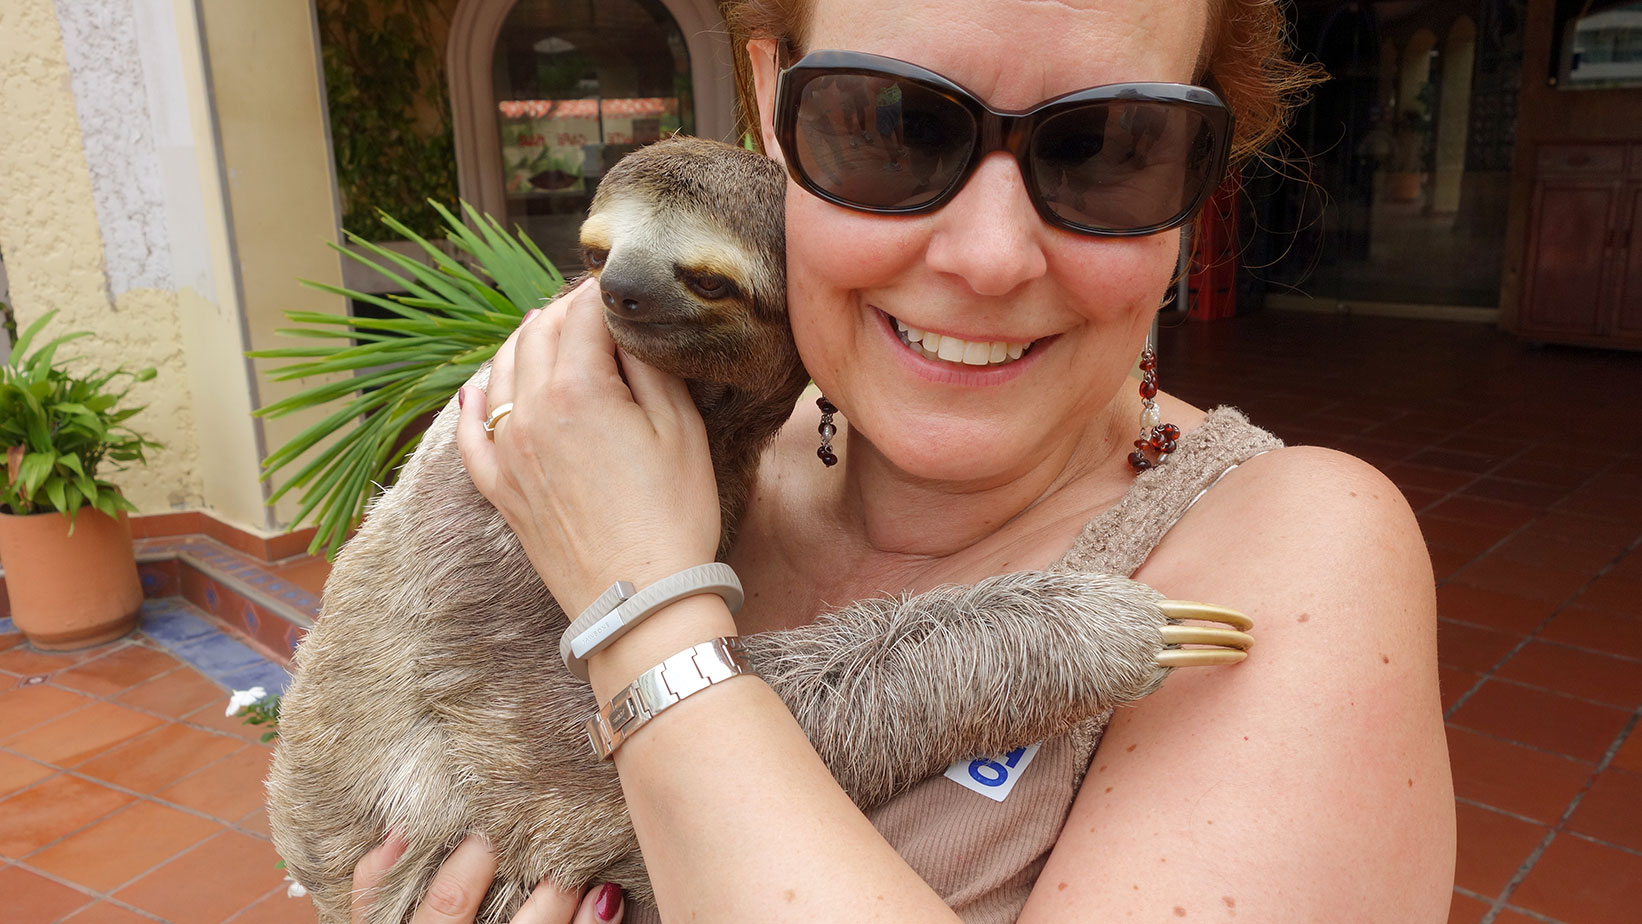 Two bucks for a photo op with the sloth? Chris couldn't have been happier.